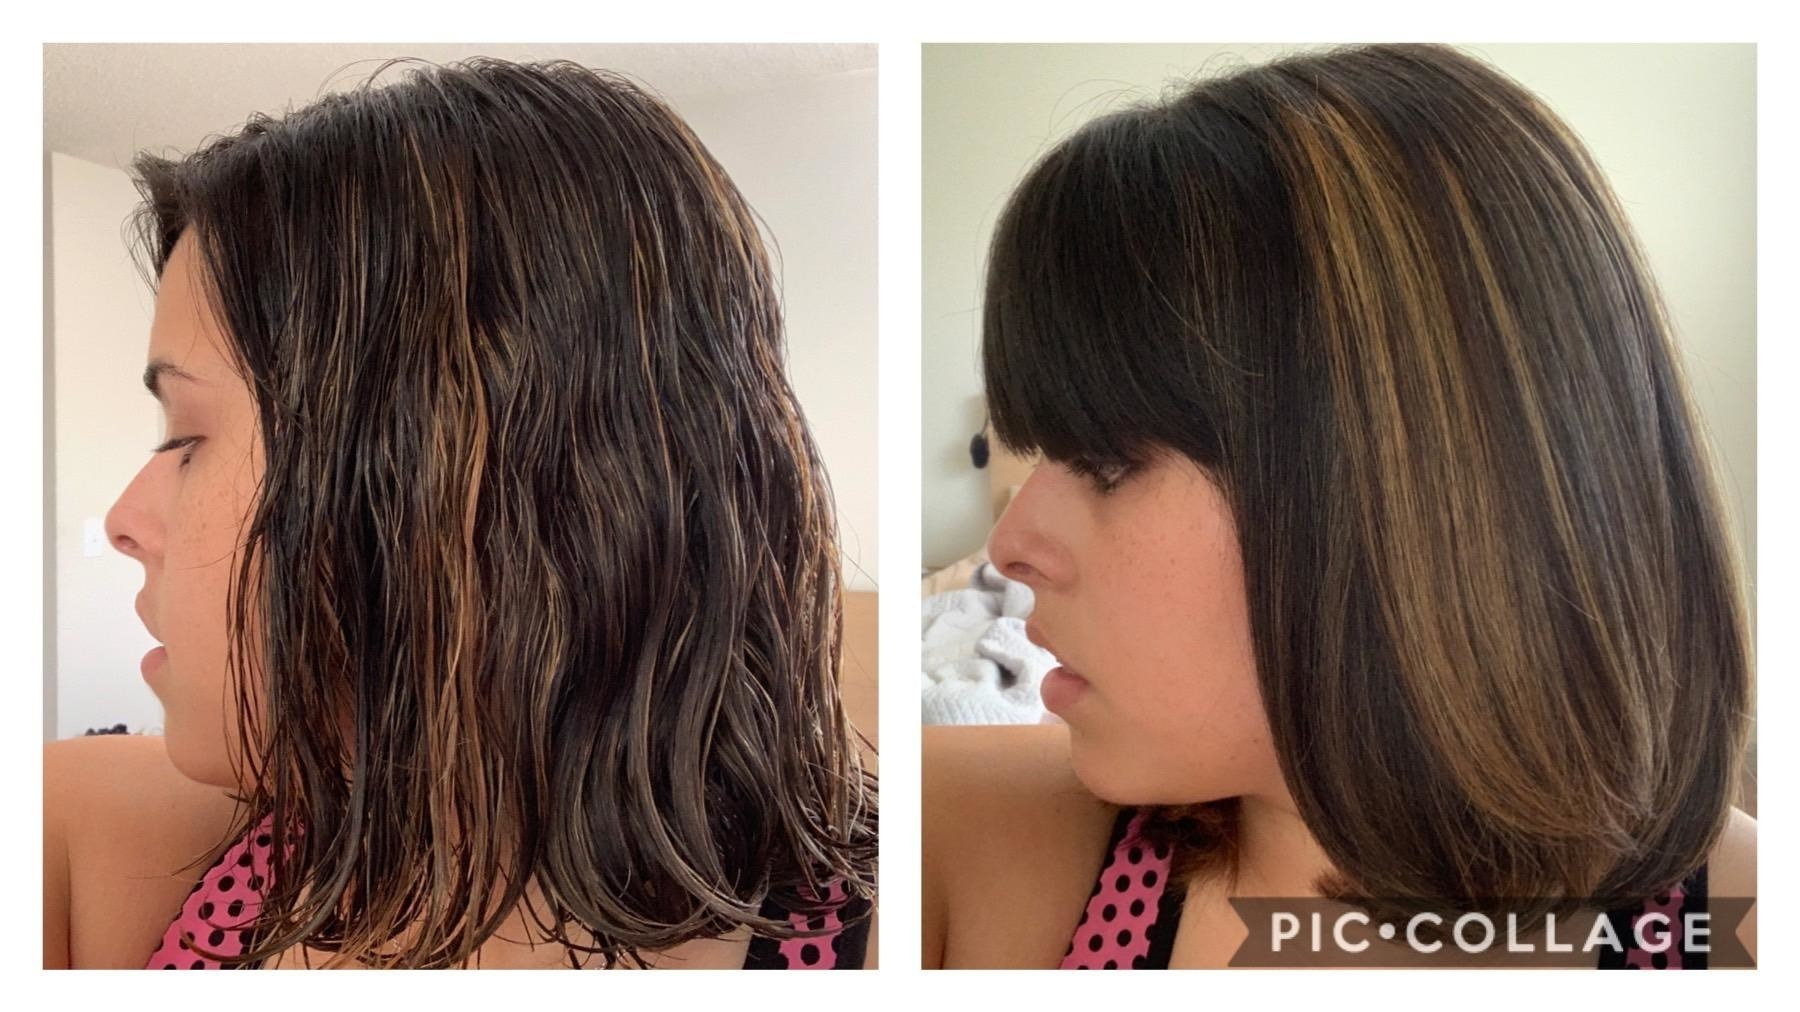 A before/after of a reviewer with wet, wavy hair, and then a sleek but voluminous blowout